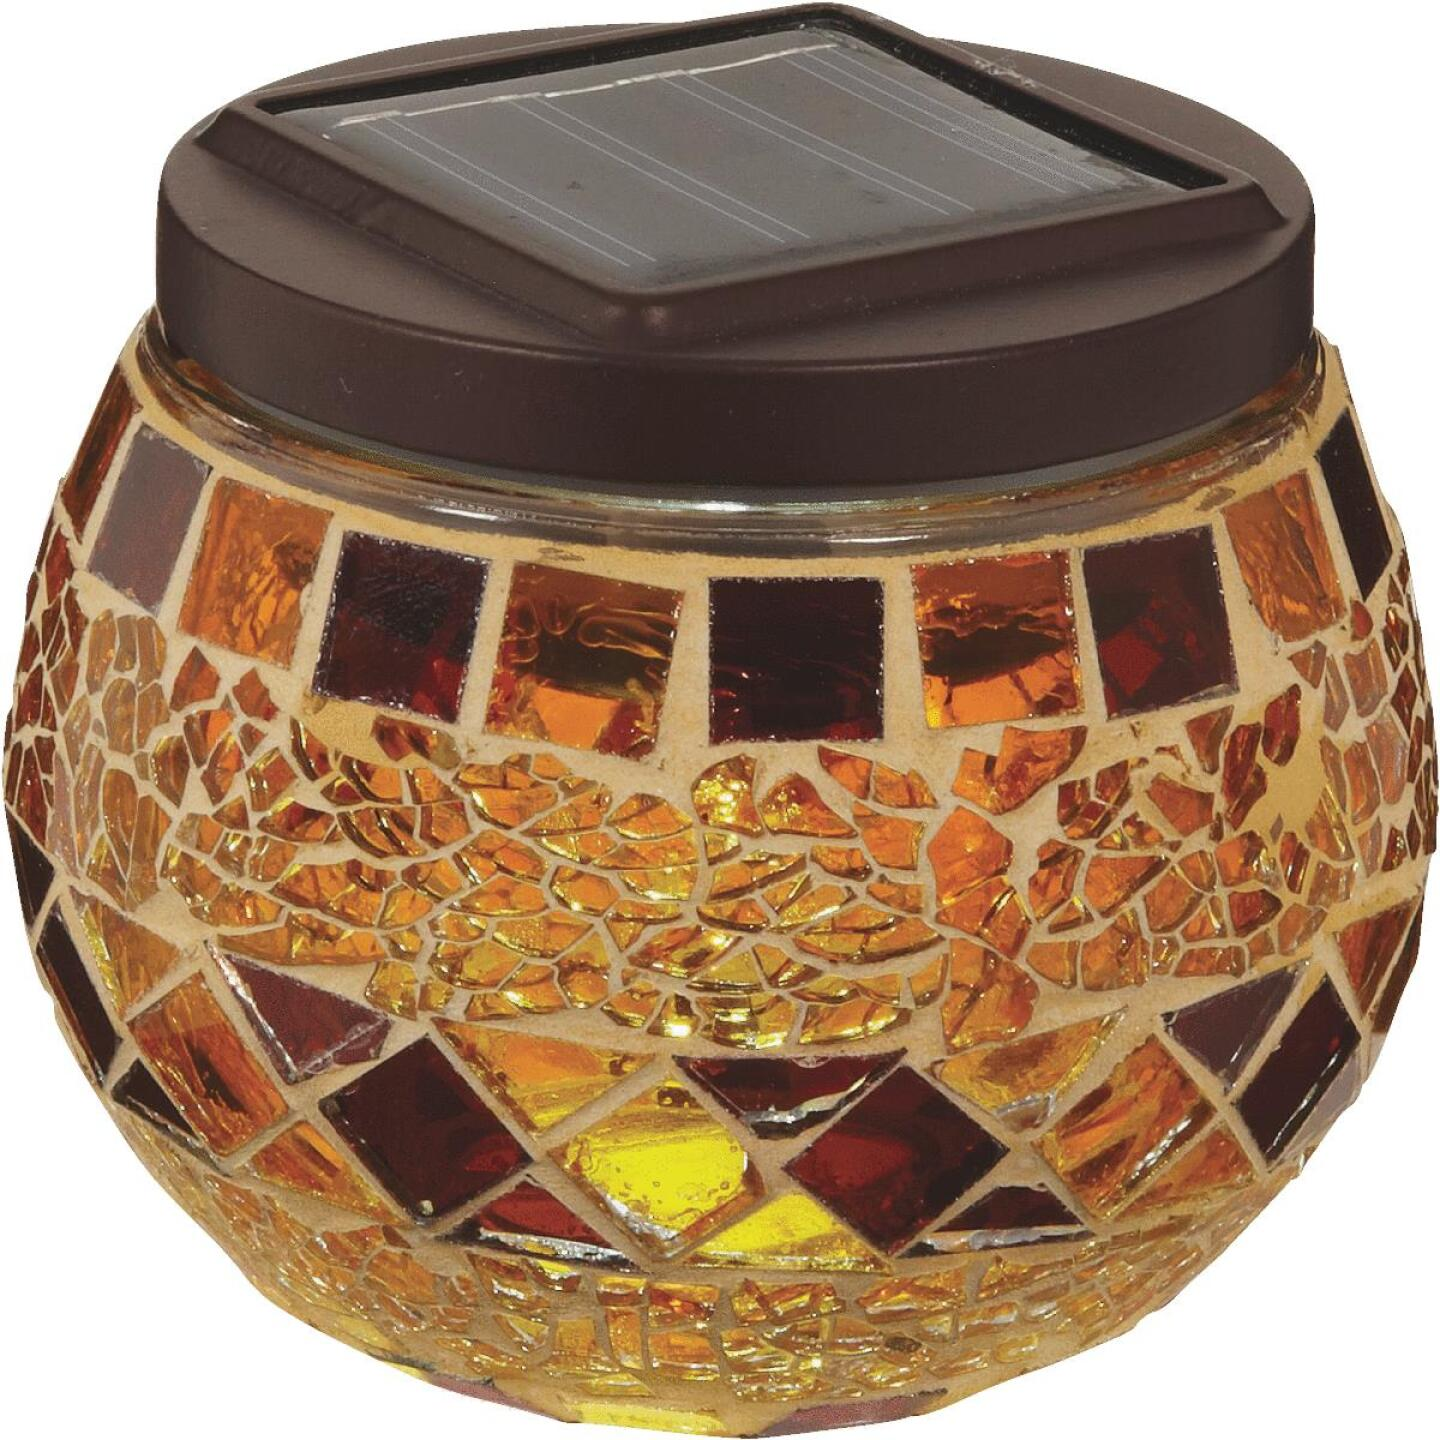 Outdoor Expressions 3.5 In. H. x 3.5 In. Dia. Autumn Harvest Tile Tabletop Solar Patio Light Image 2